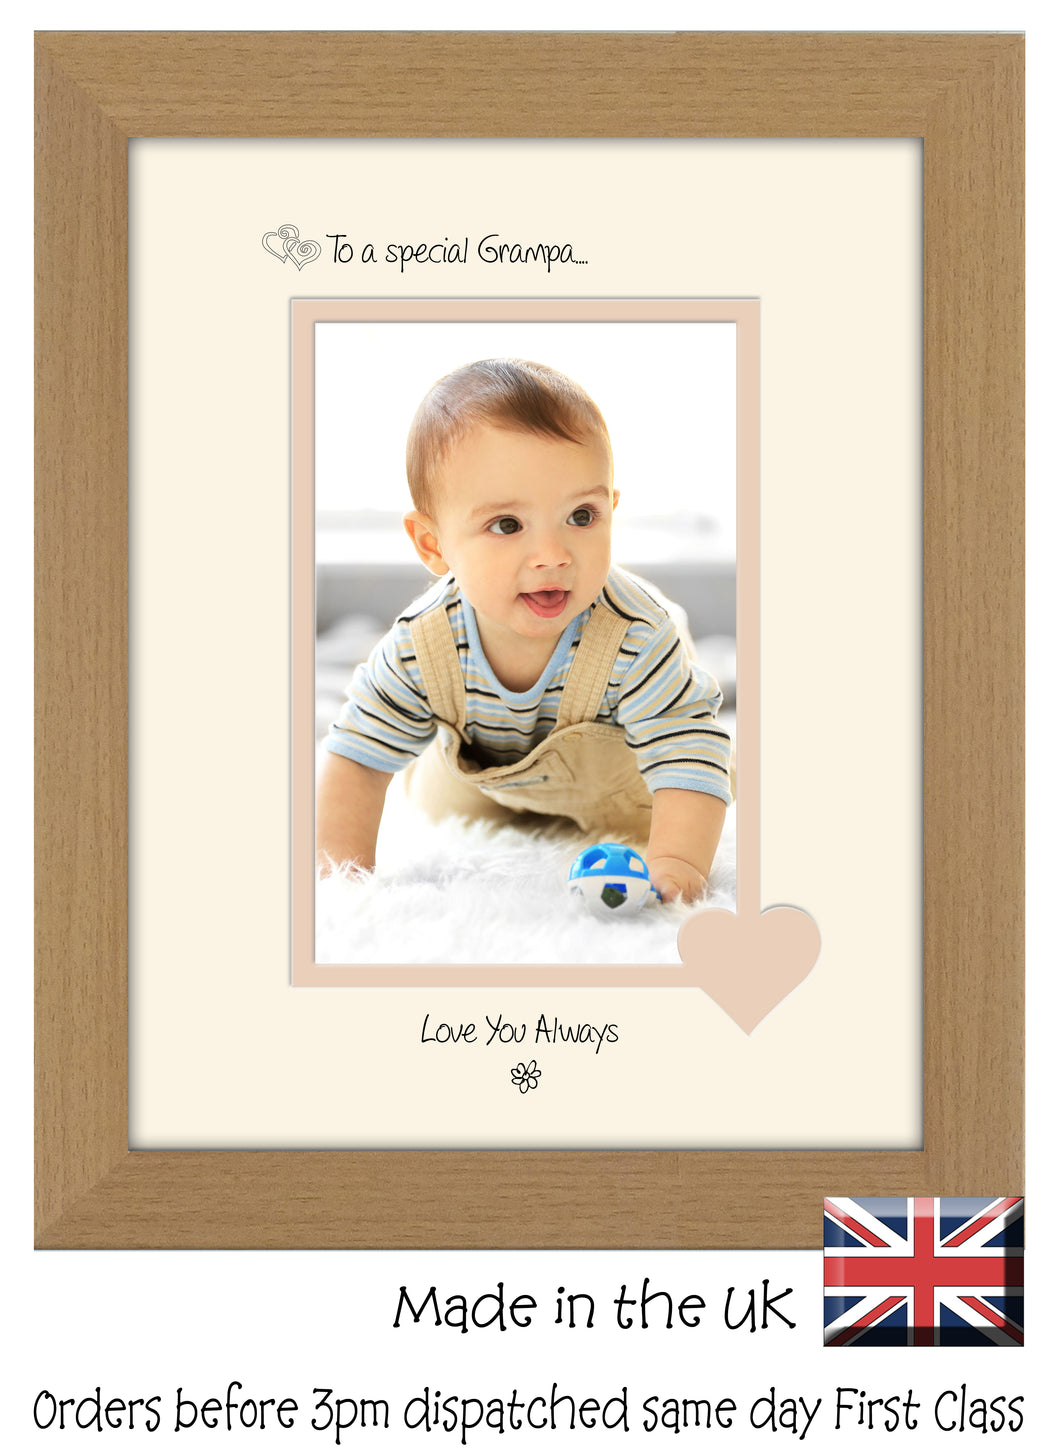 Grampa Photo Frame - To a Special Grampa ... Love you Always Portrait photo frame 6